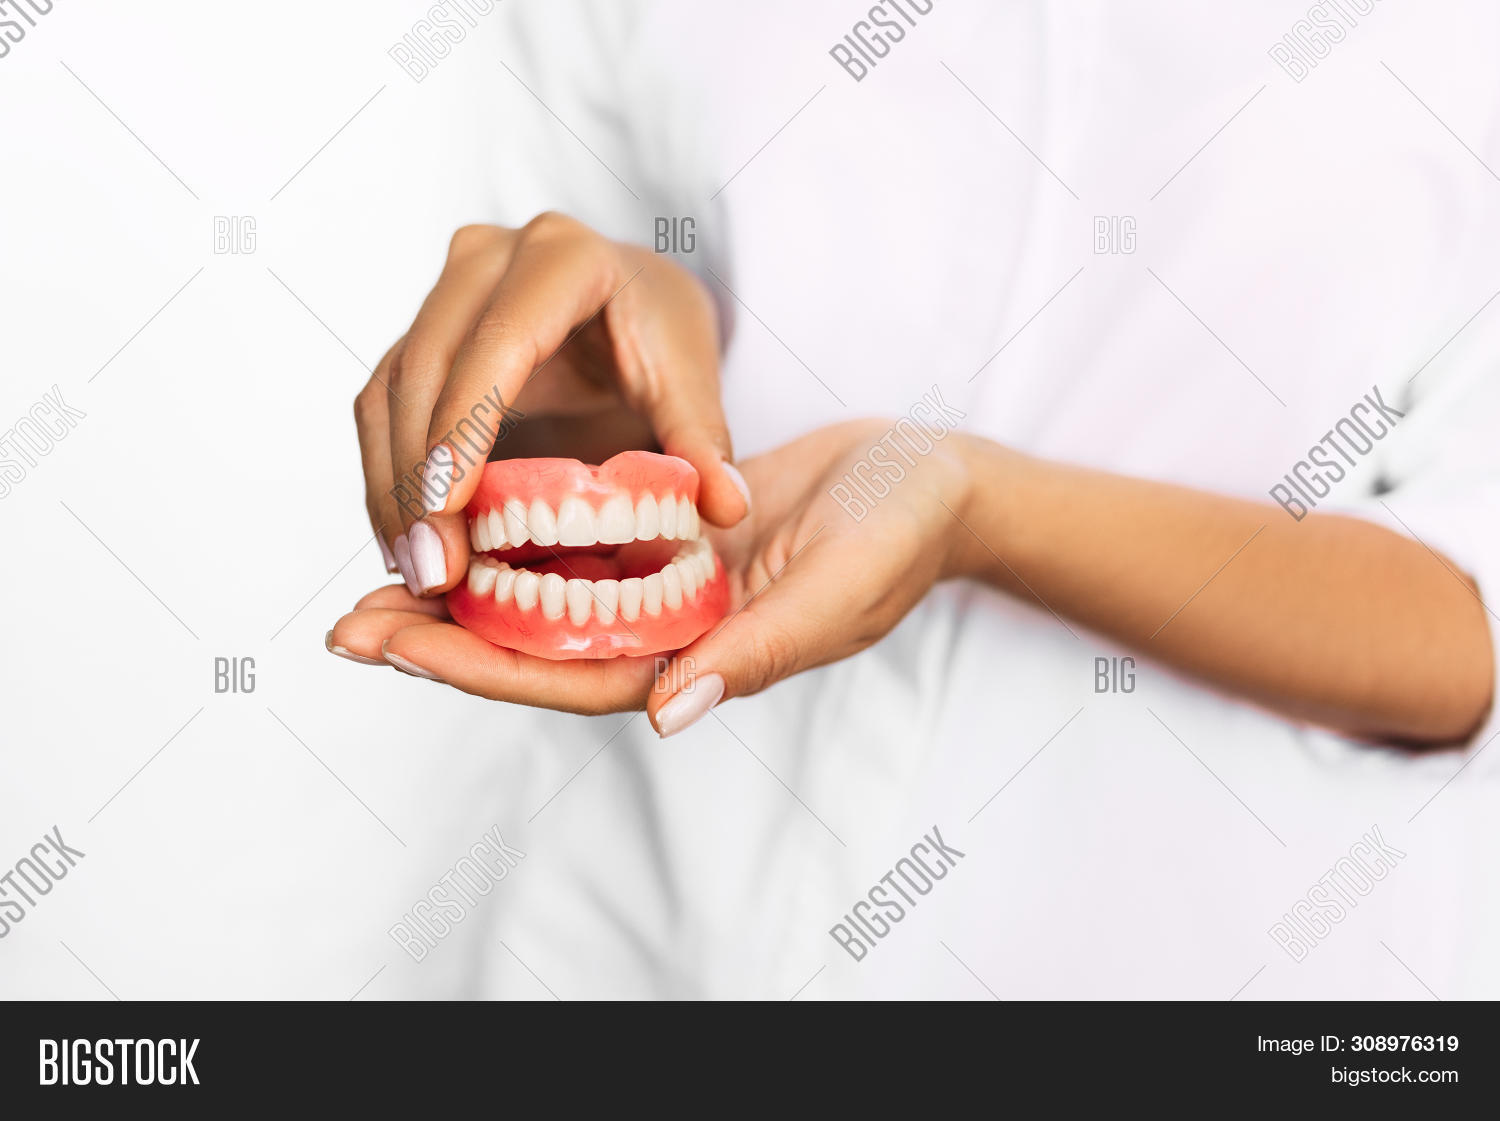 artificial,bridge,care,caries,cavity,ceramic,clinic,closeup,dental,dentist,dentistry,denture,doctor,elderly,false,glove,hand,health,healthy,hold,human,hygiene,jaw,medical,medicine,model,modeling,mouth,orthodontic,orthodontist,plastic,porcelain,profession,professional,prosthesis,prosthetic,prothesis,removable,service,smile,technician,technology,teeth,tooth,treatment,white